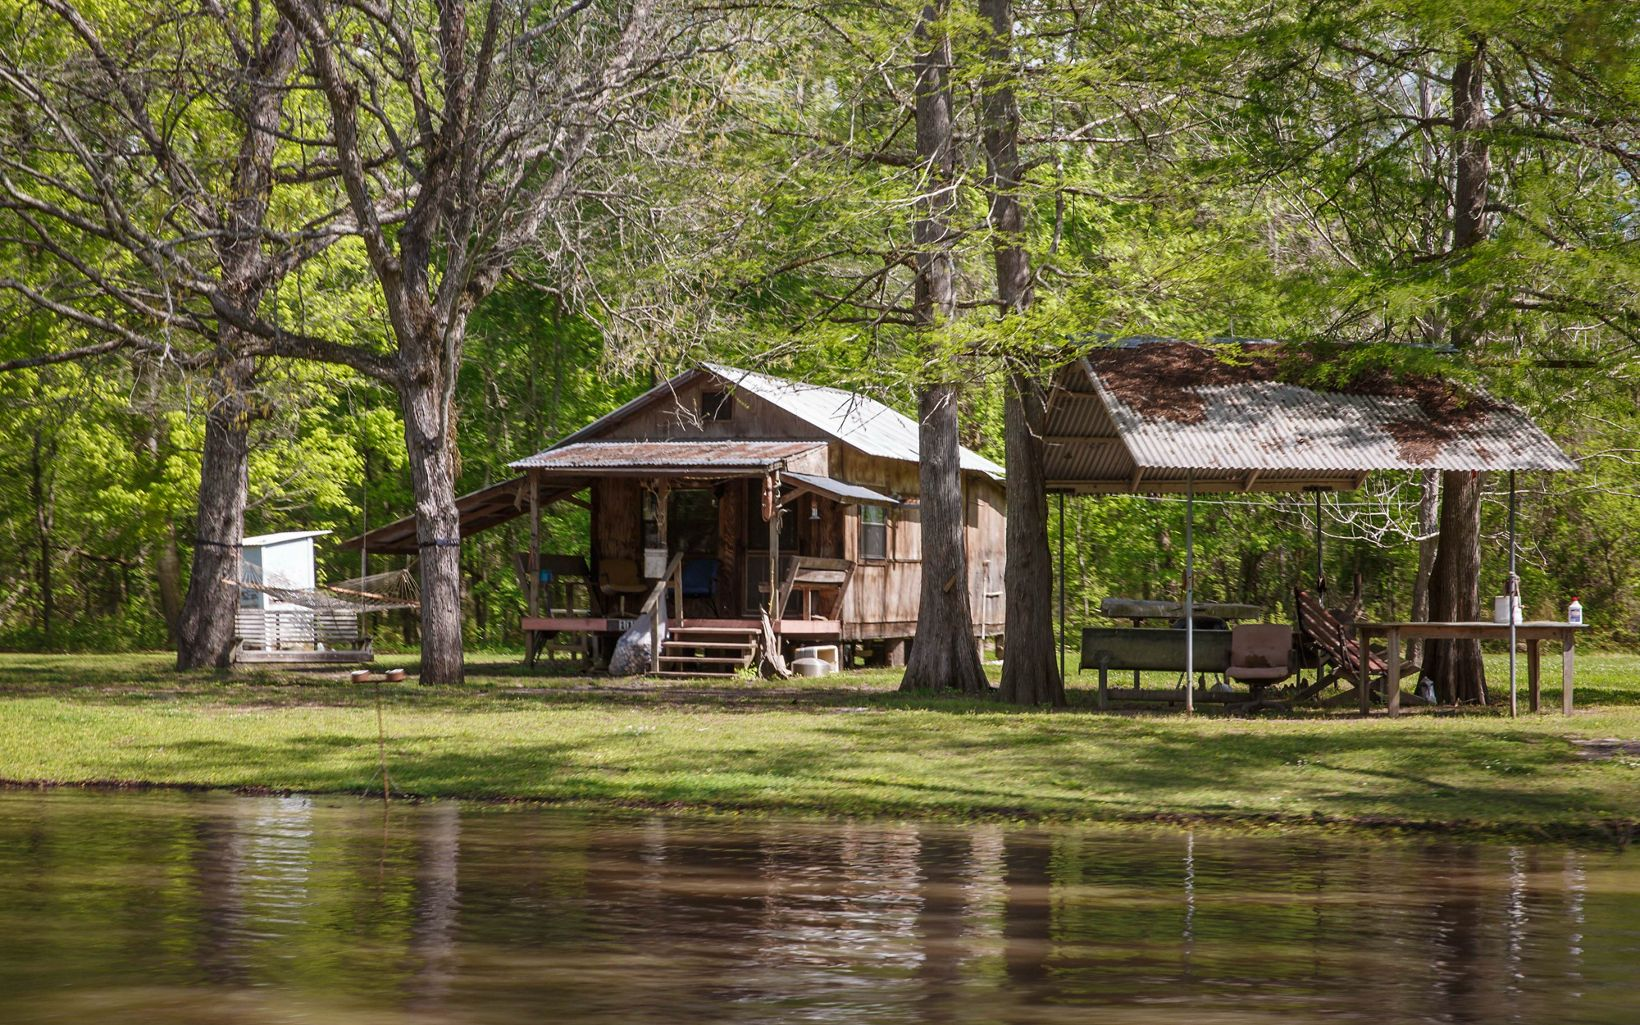 A house in the Atchafalaya River Basin